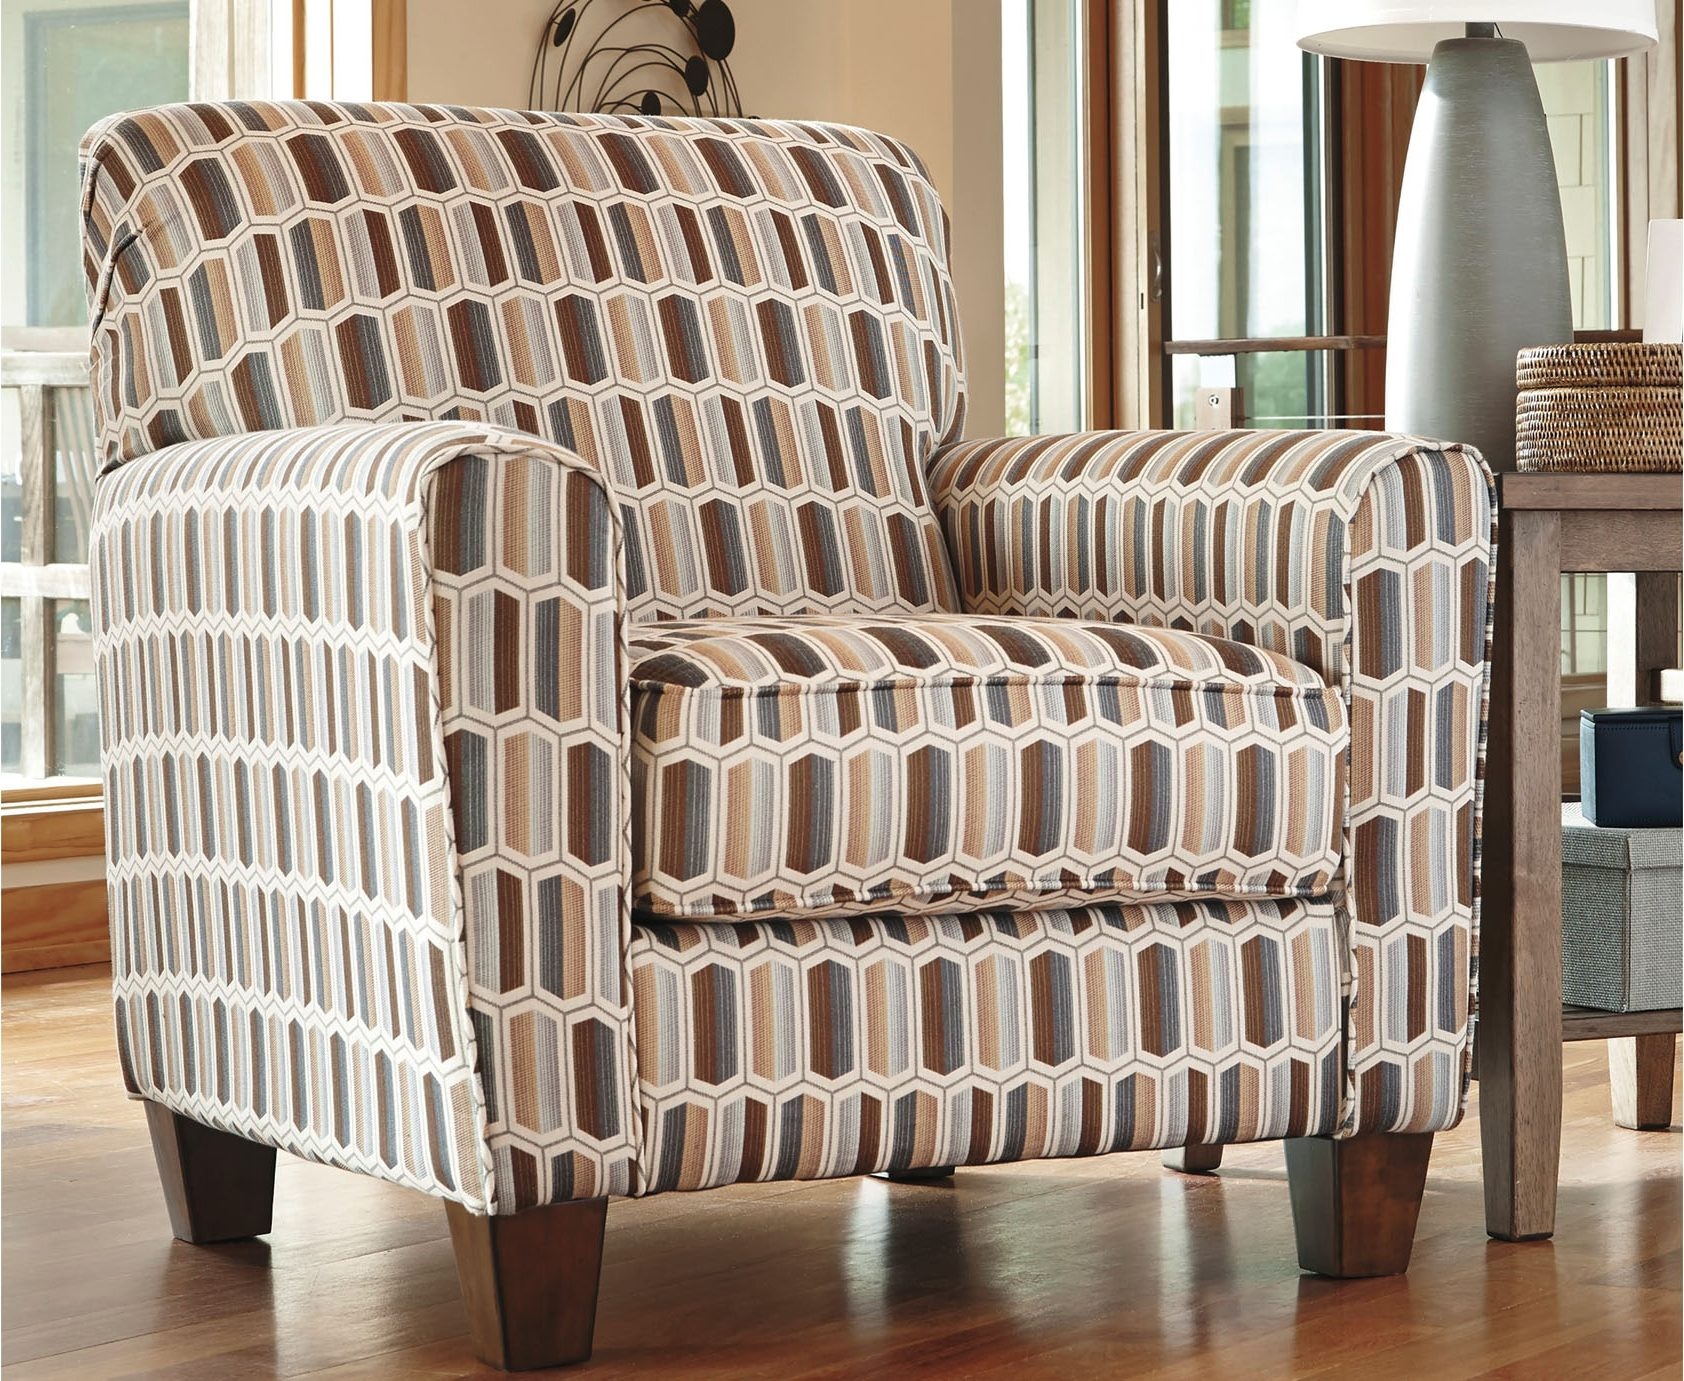 Fabric Furniture Rental Fabric Chair Styles New Image Furniture Leasing